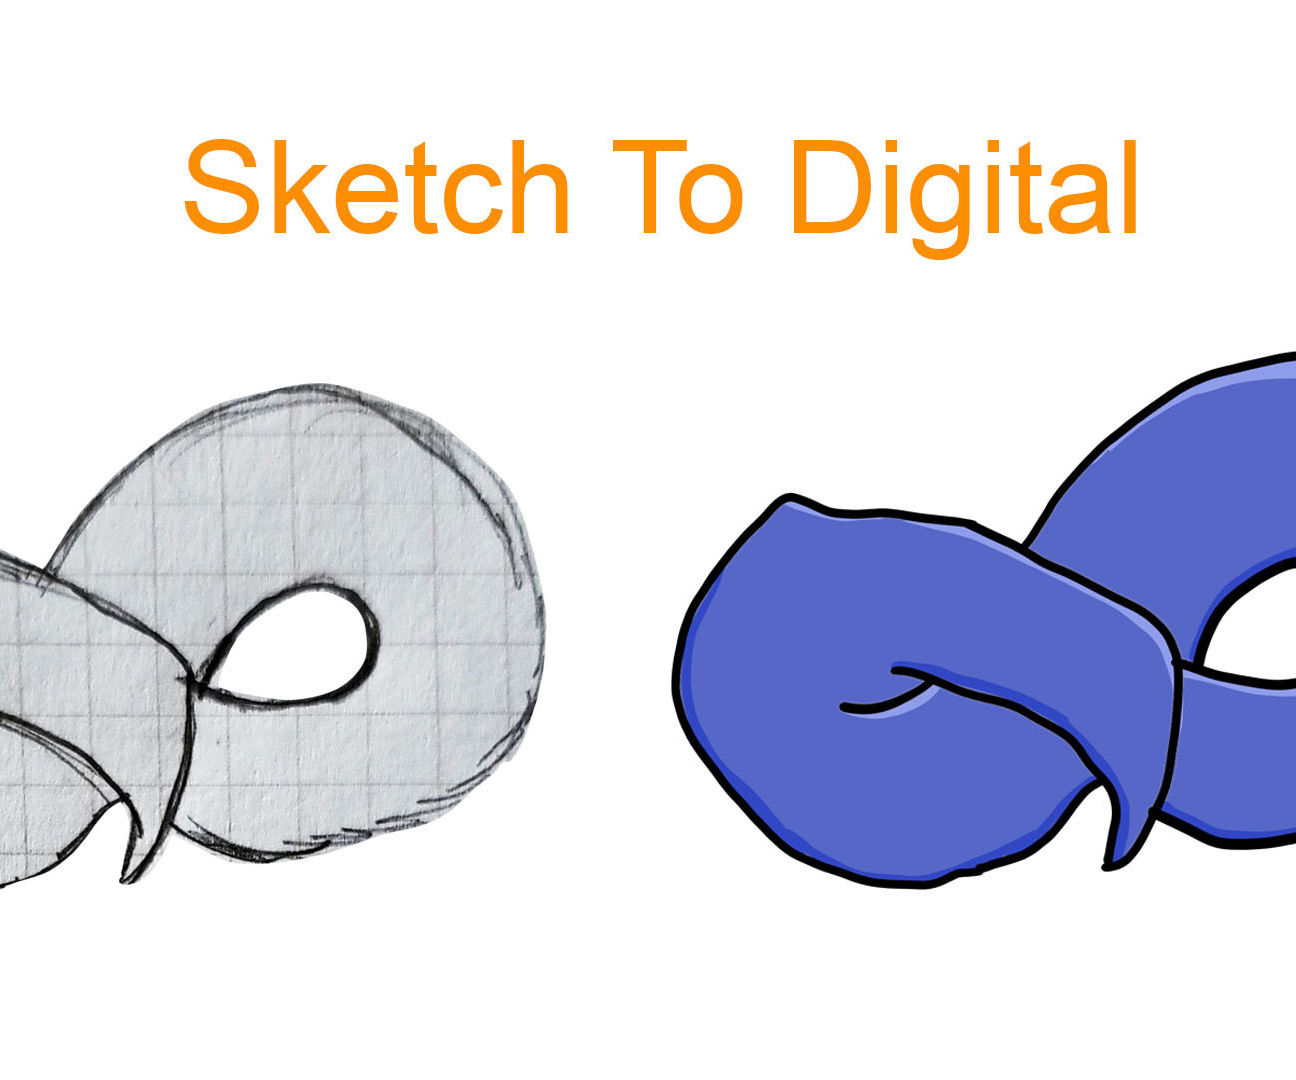 How to Convert a Sketch Into a Digital Drawing Using Photoshop